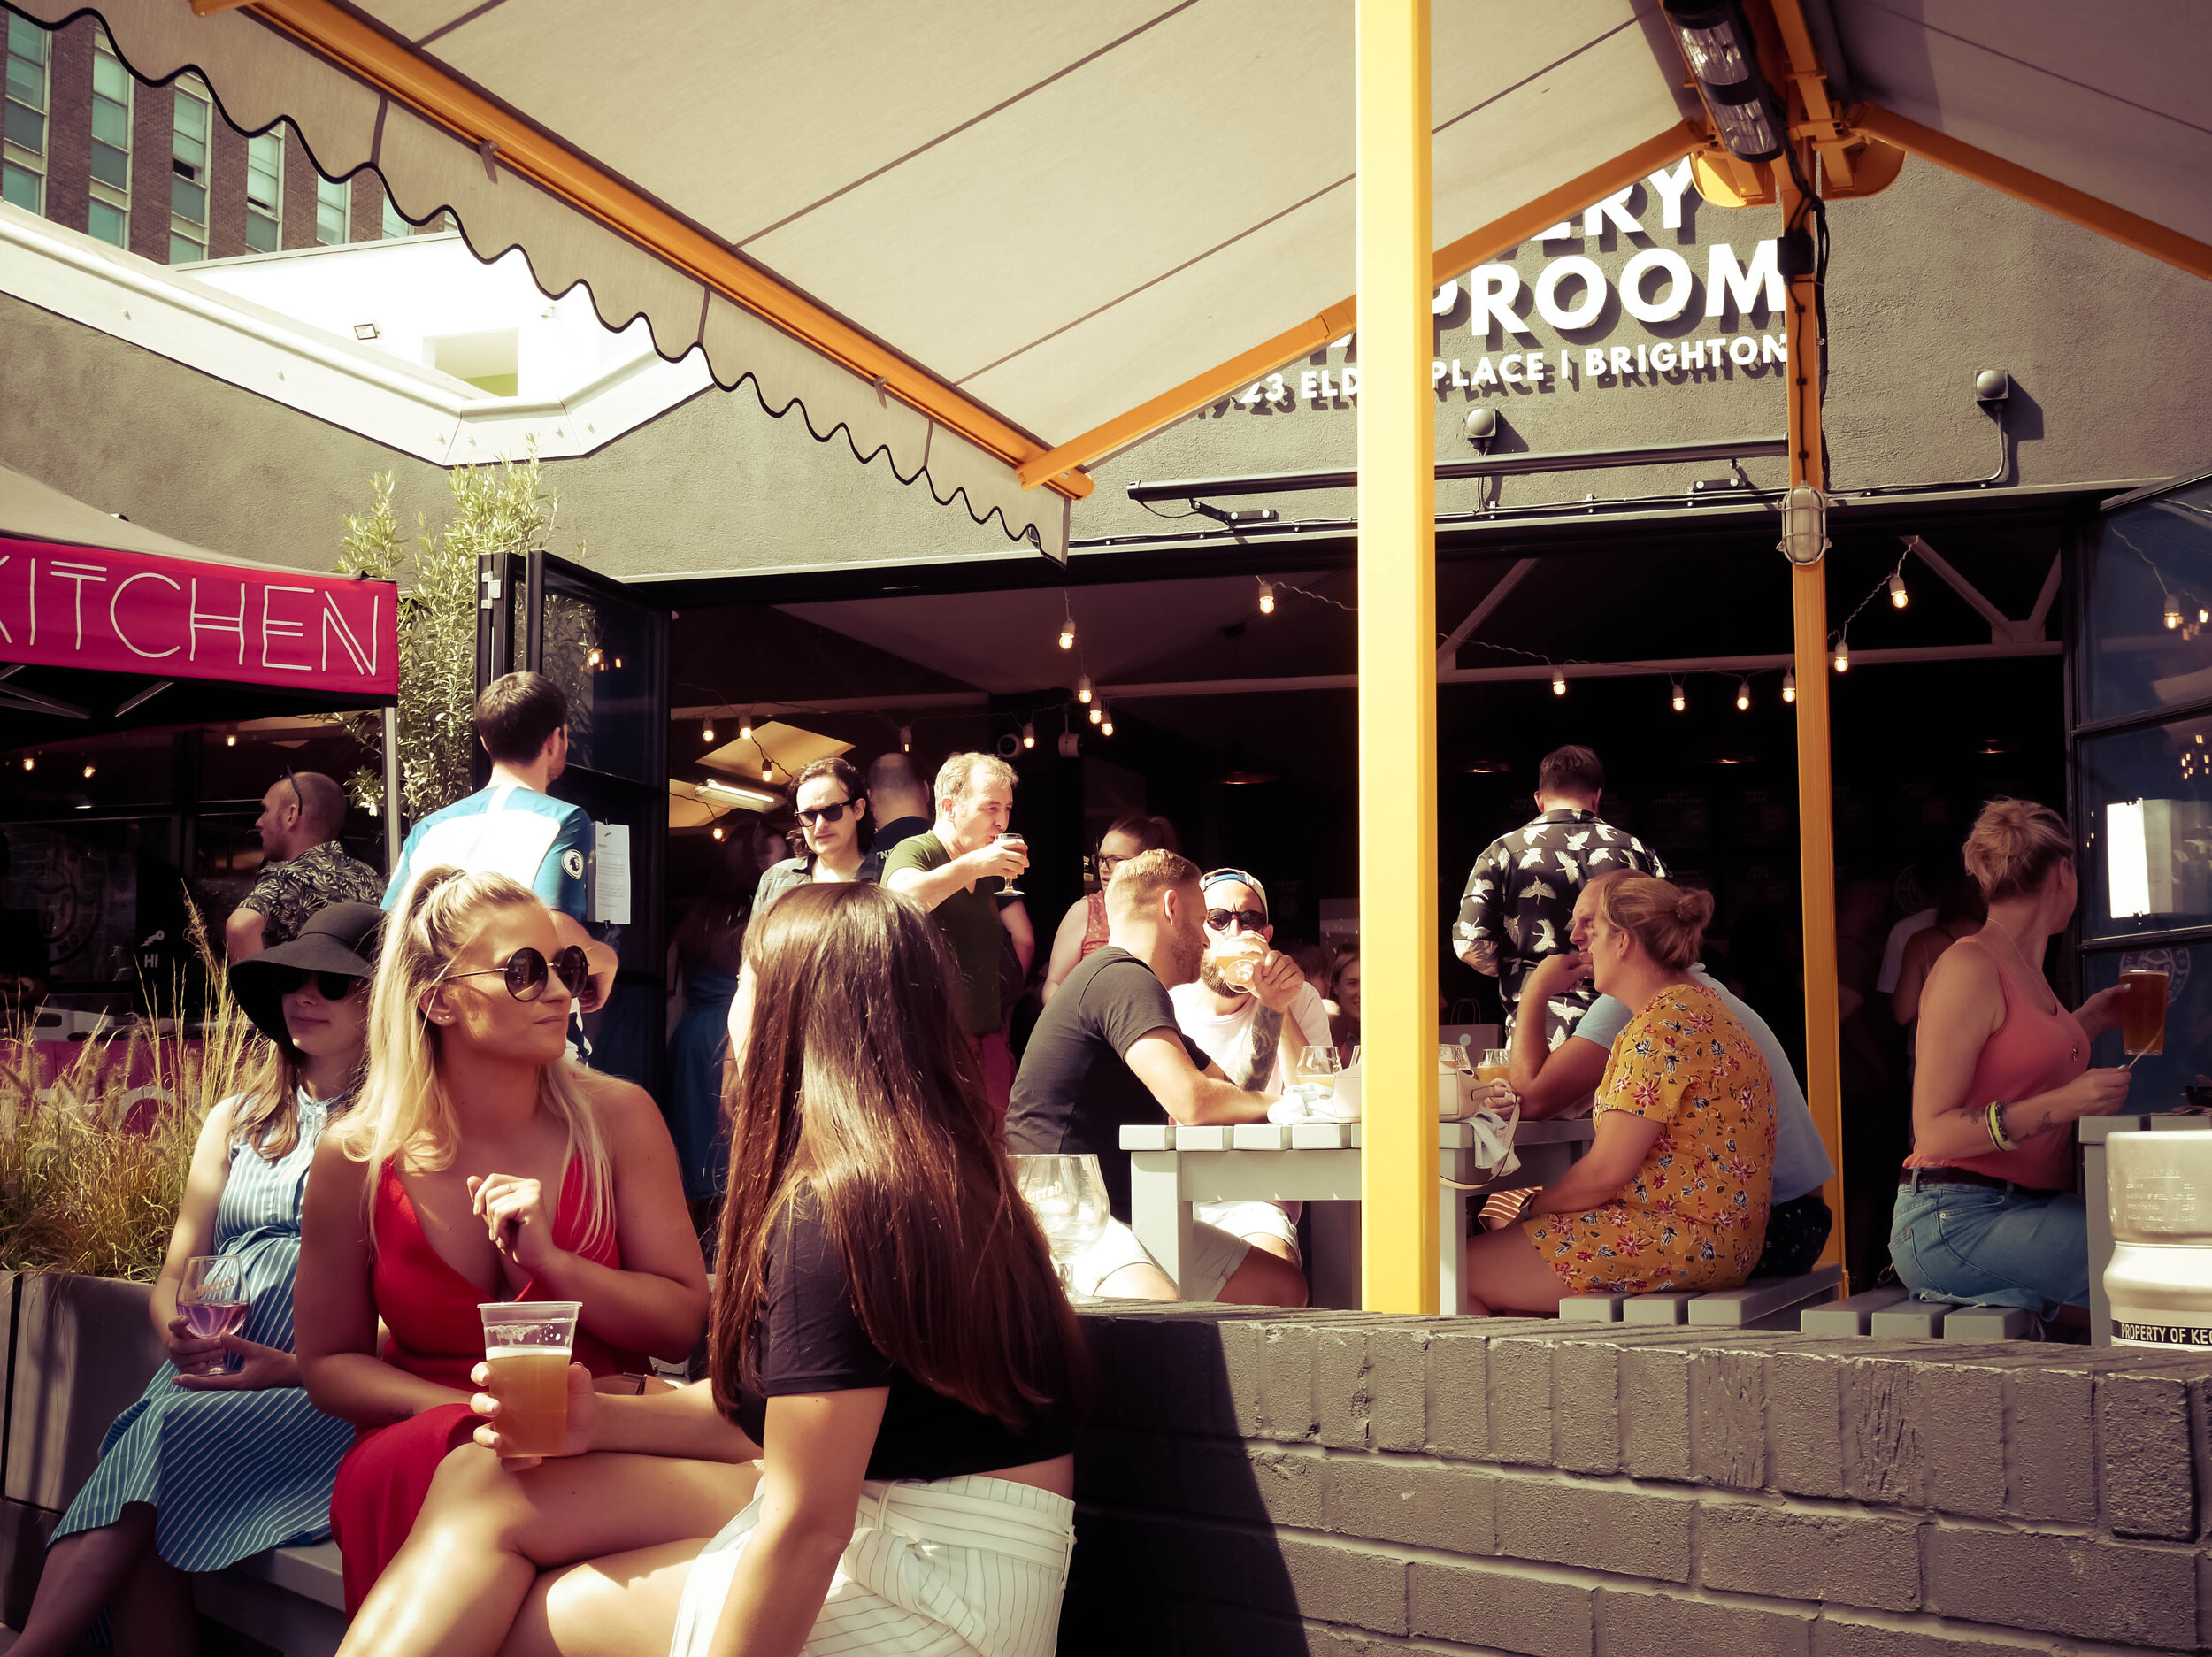 Brighton pub beer garden, UnBarred Brewery and Taproom